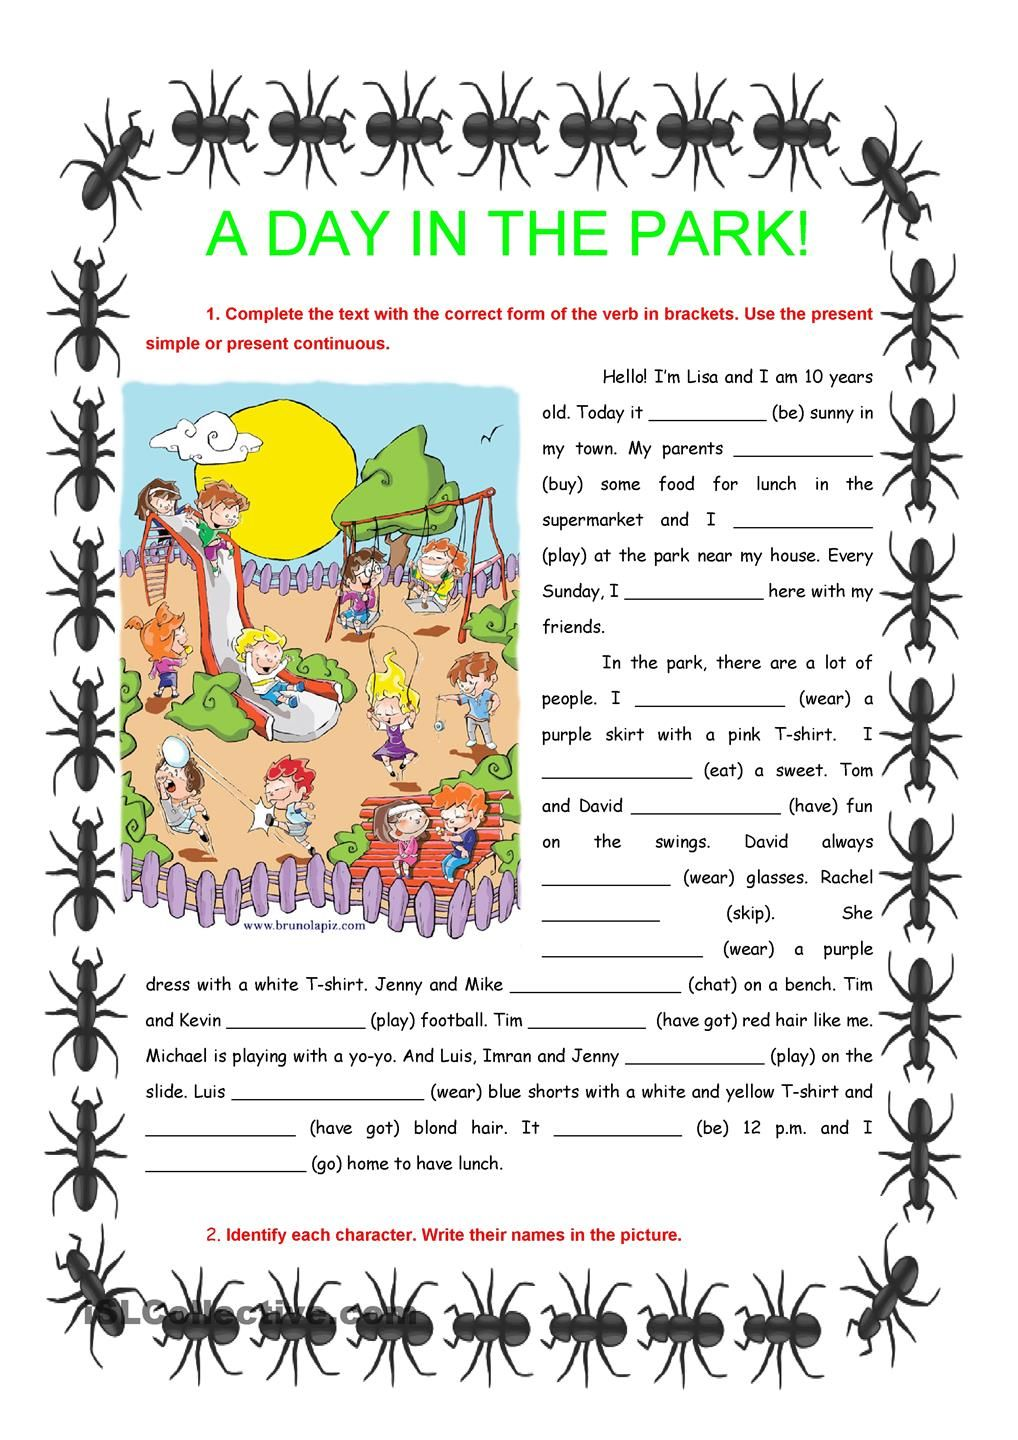 A Day In The Park Present Simple Continuous Teaching English Grammar English Worksheets For Kids English Language Teaching [ 1440 x 1018 Pixel ]